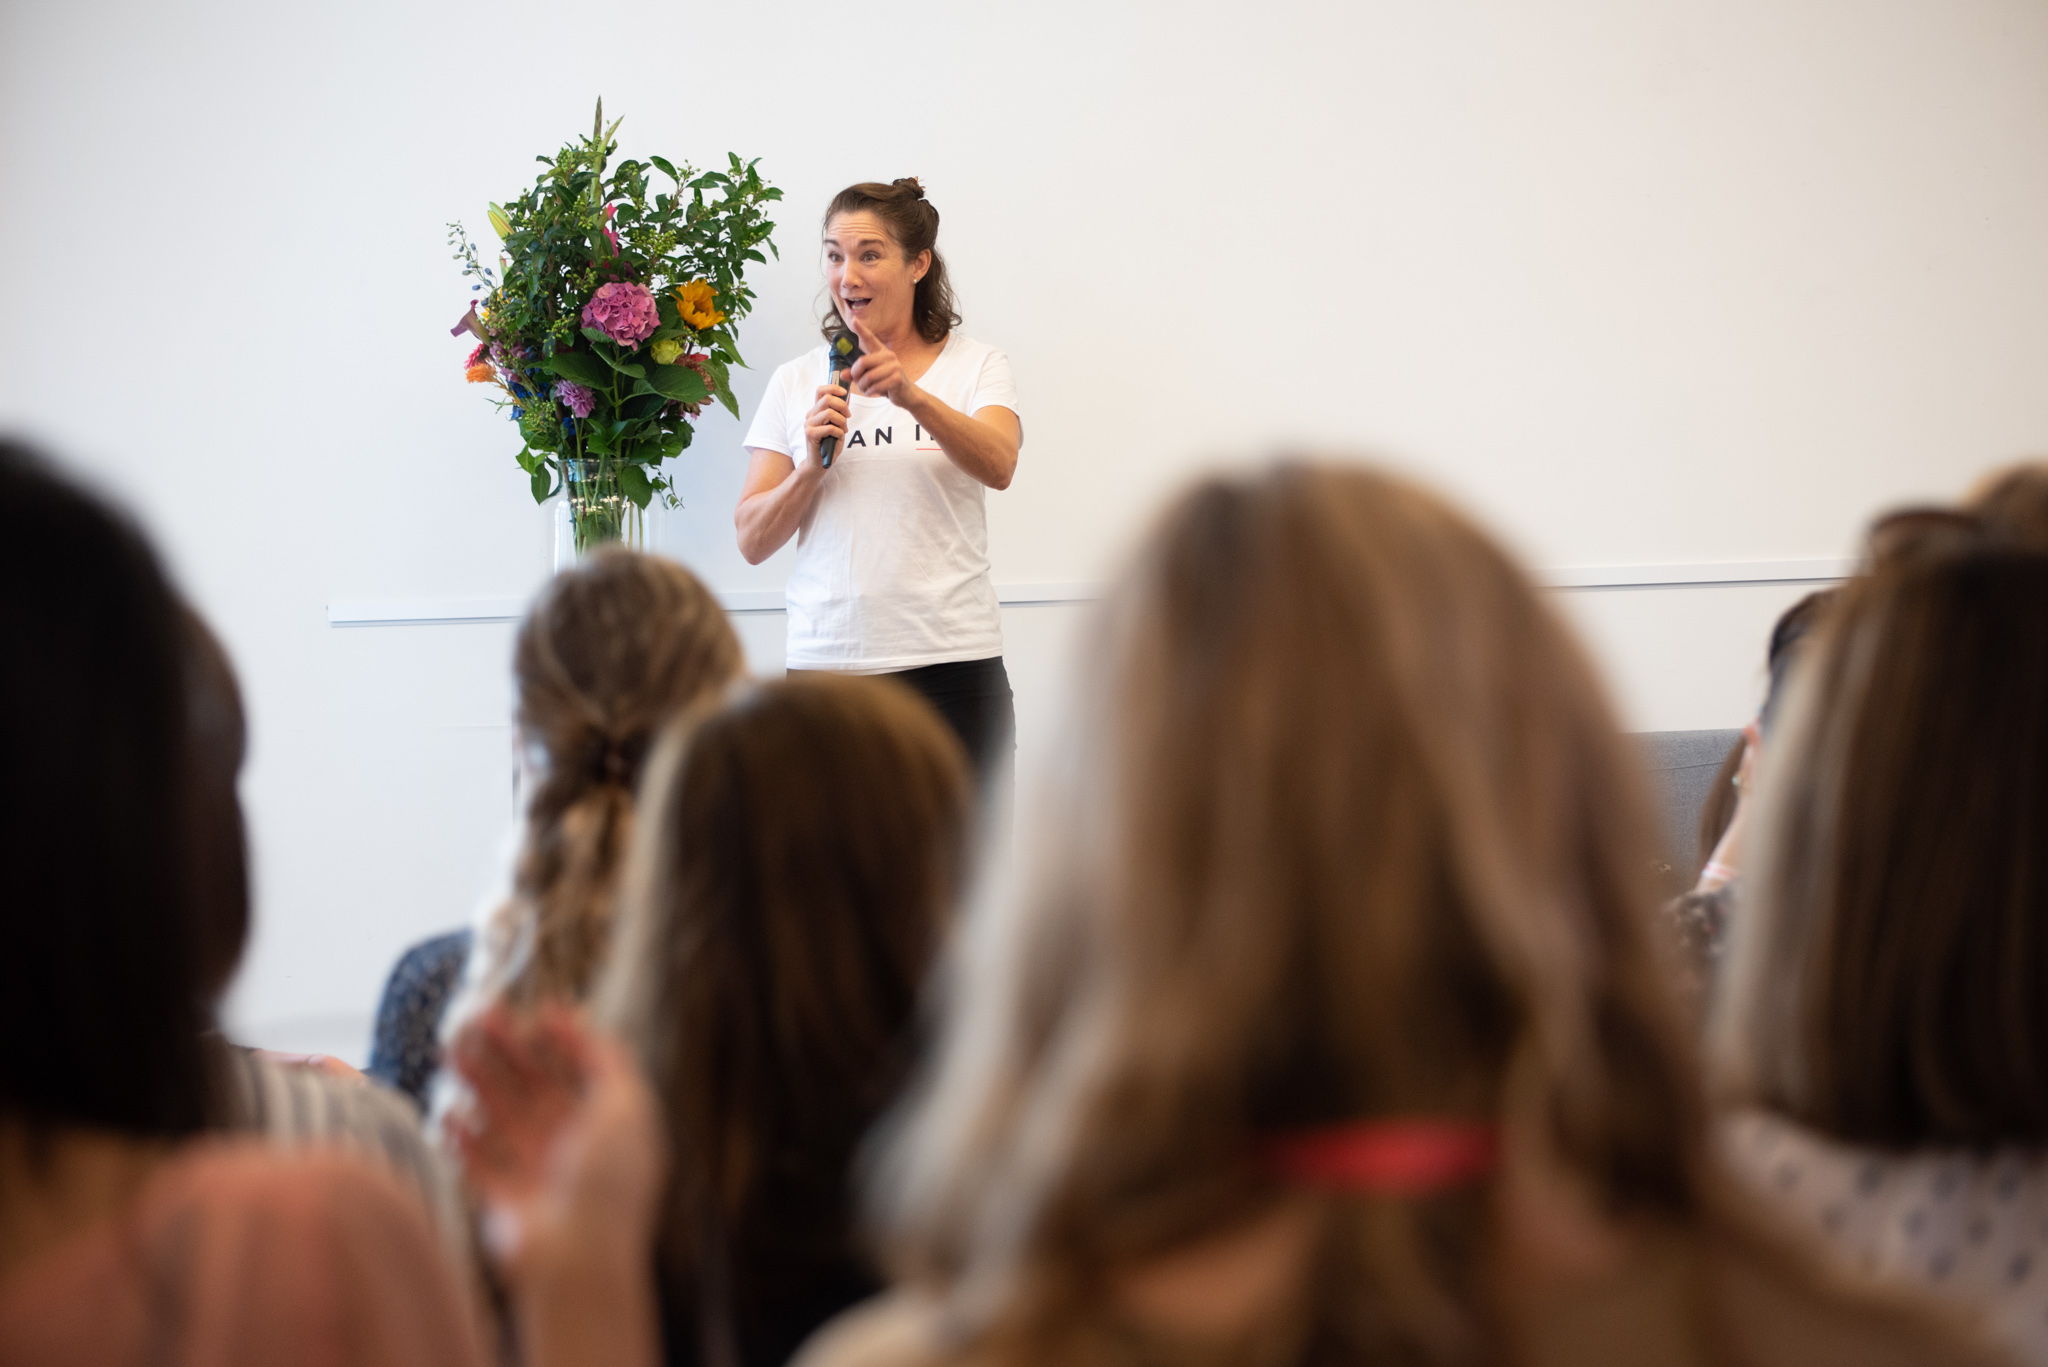 Lean In Netherlands Event Inspire Women in Leadership